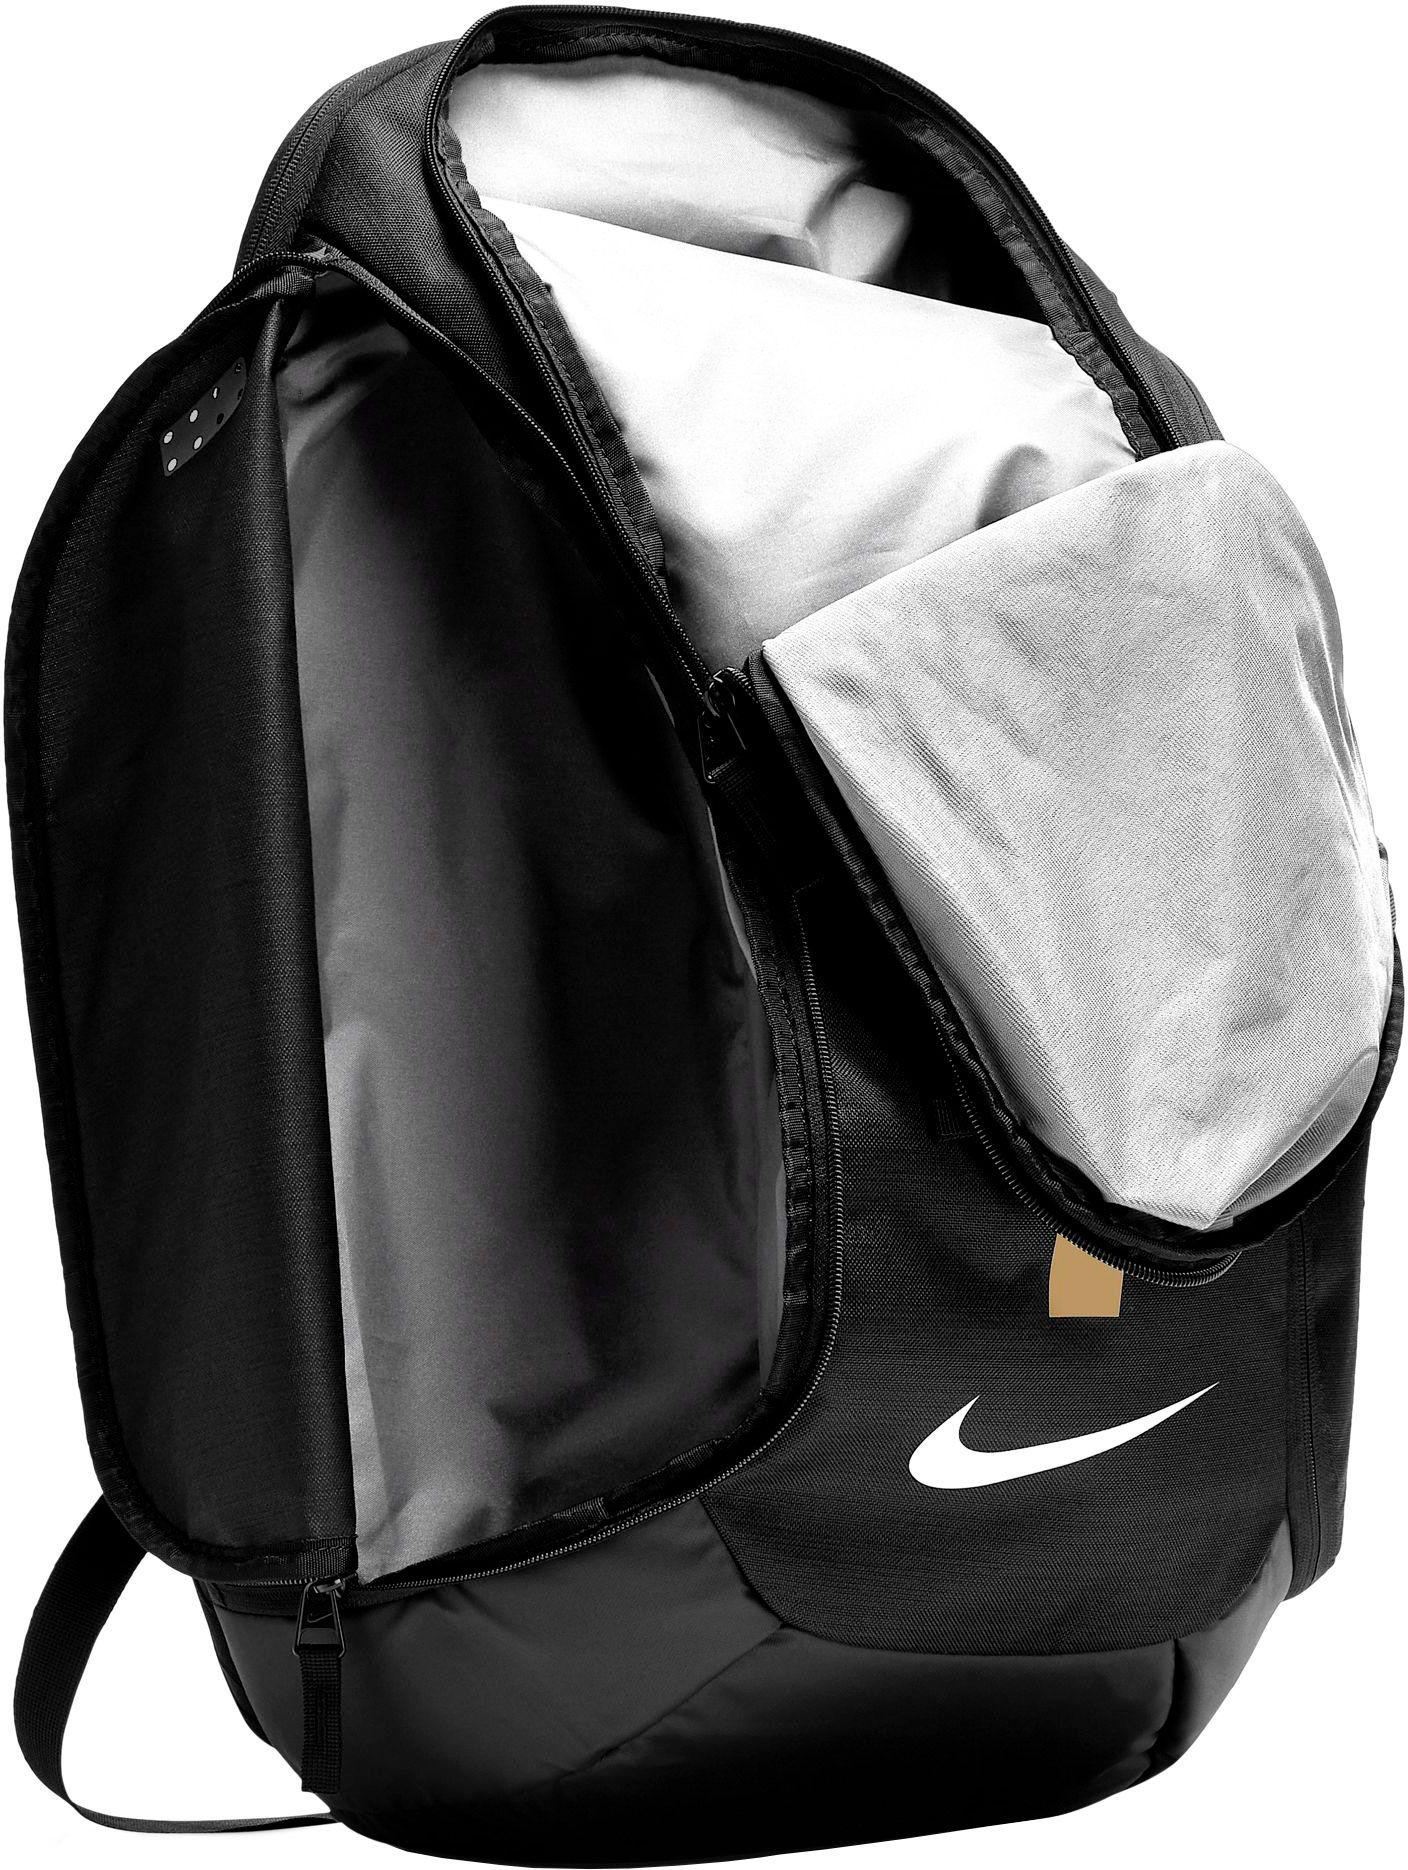 85a8dbba78 Lyst - Nike Hoops Elite Pro Basketball Backpack in Black for Men